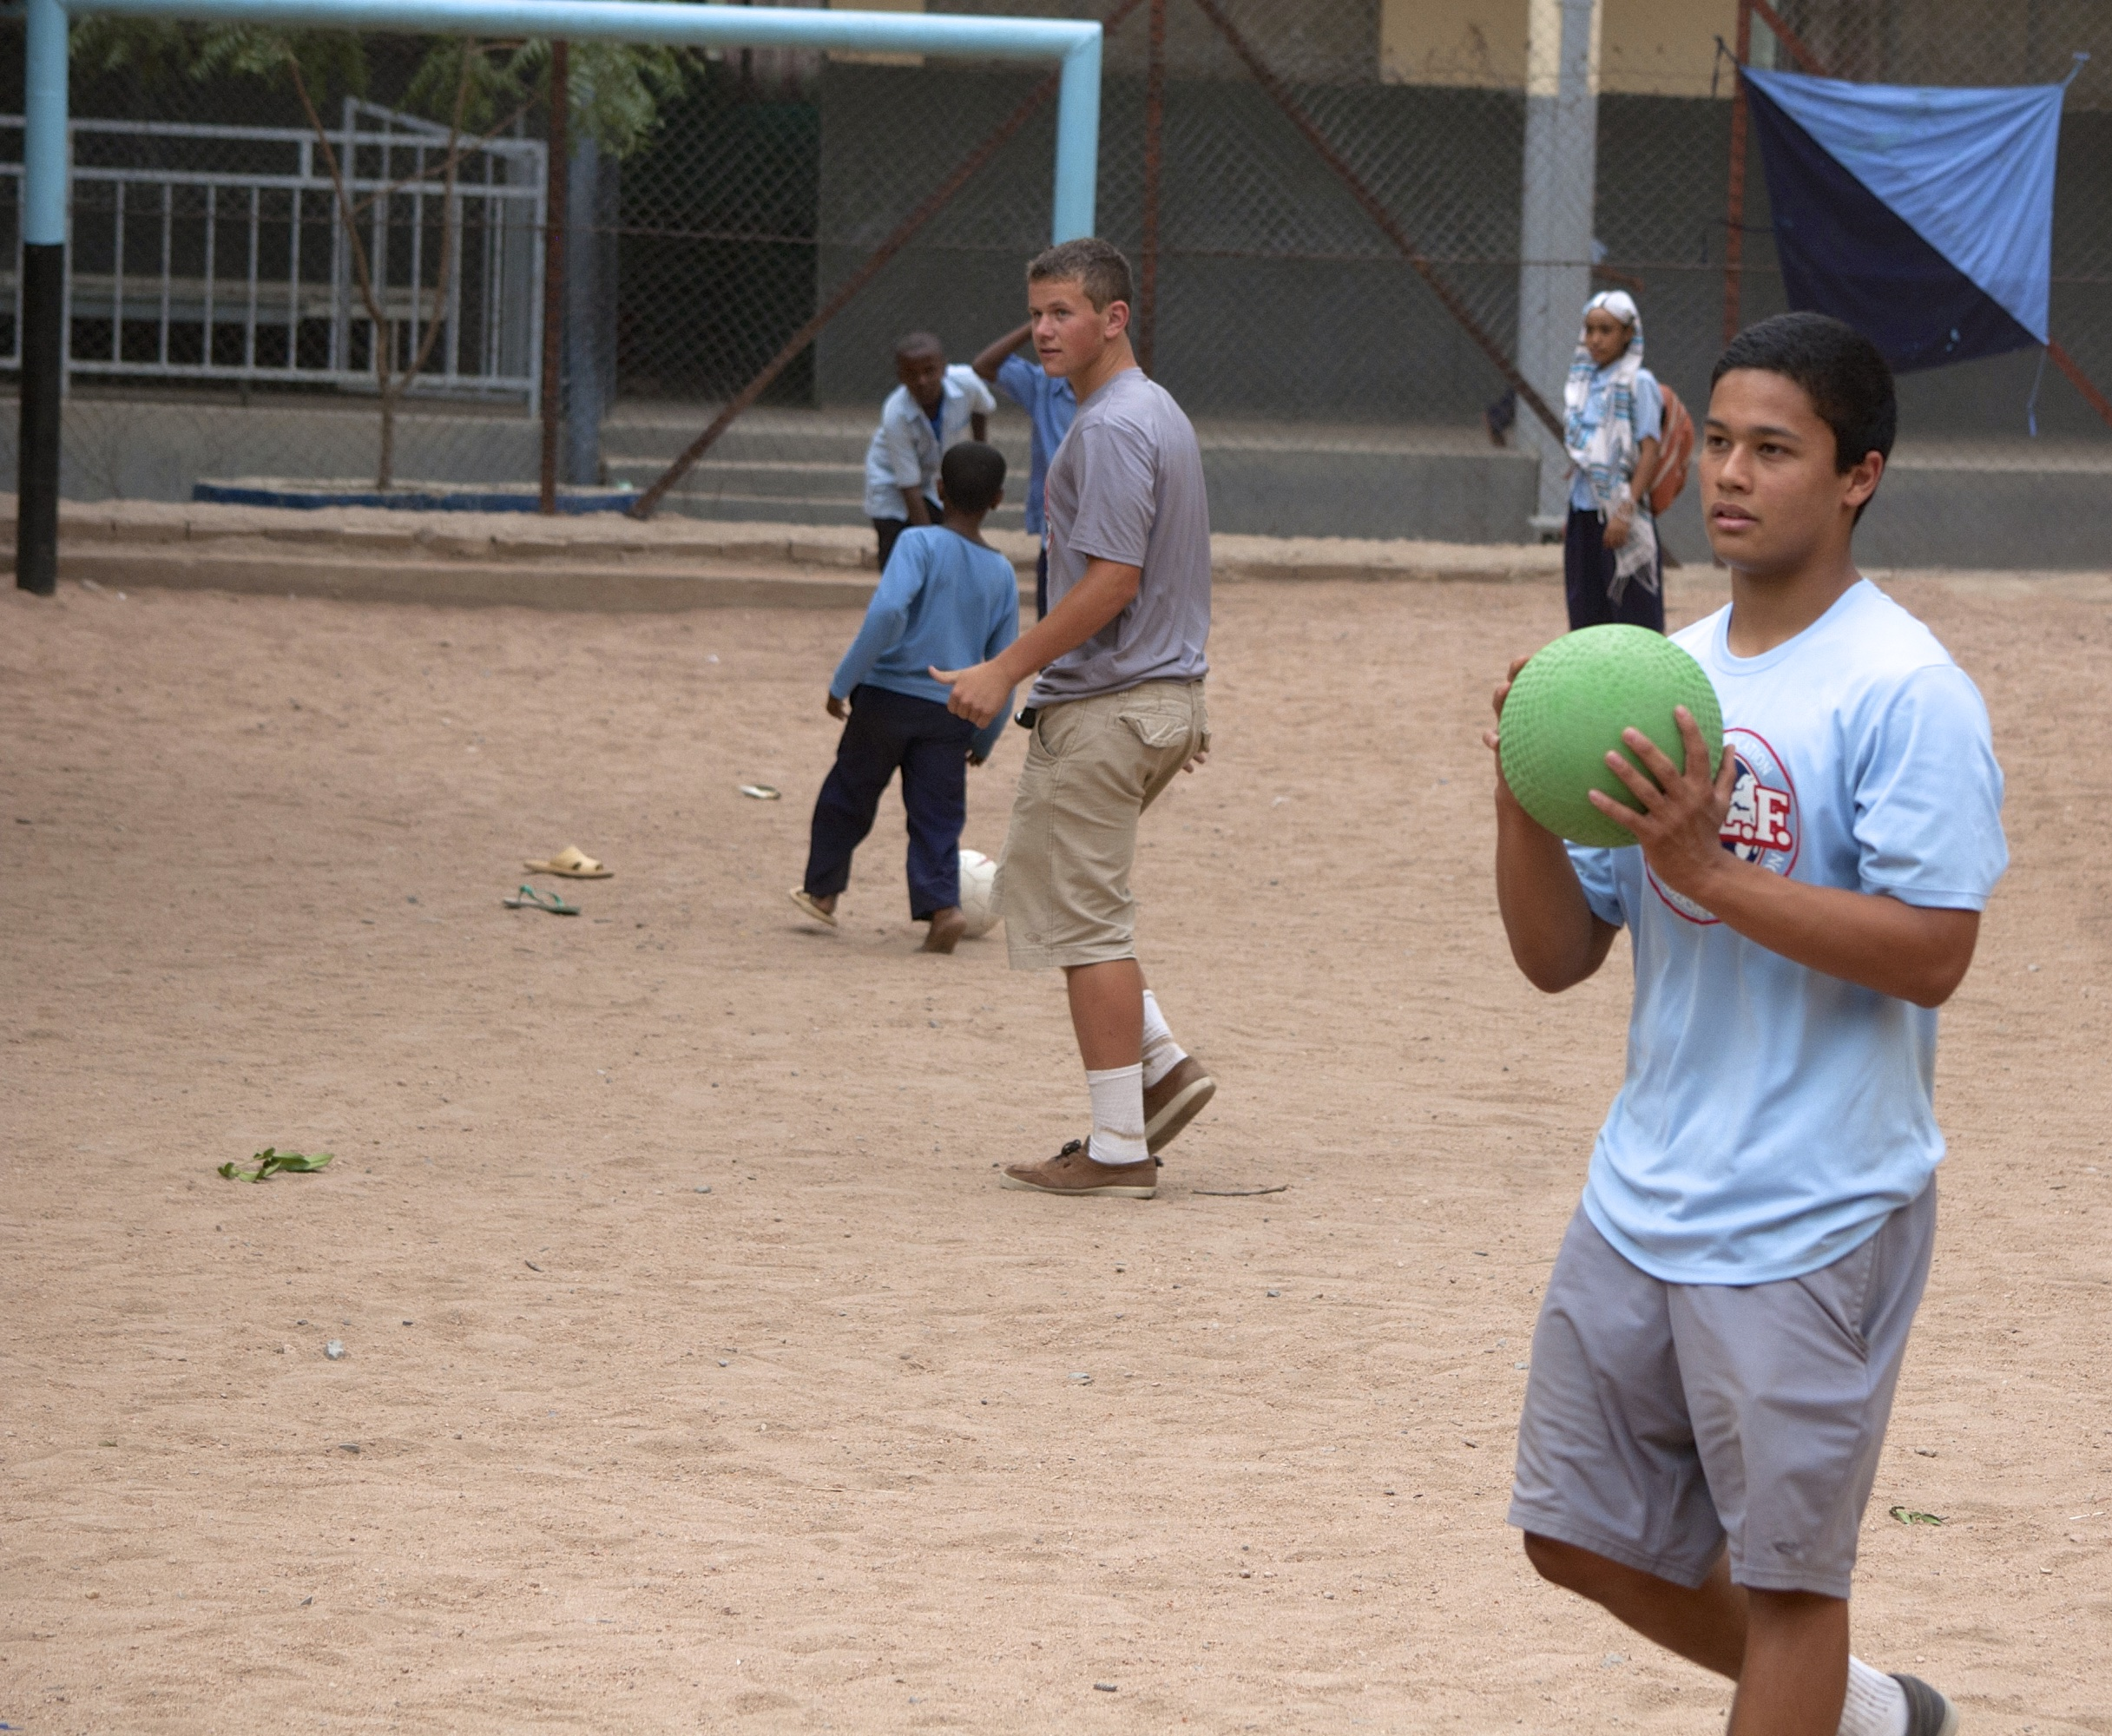 Joey pitches the ball in kickball